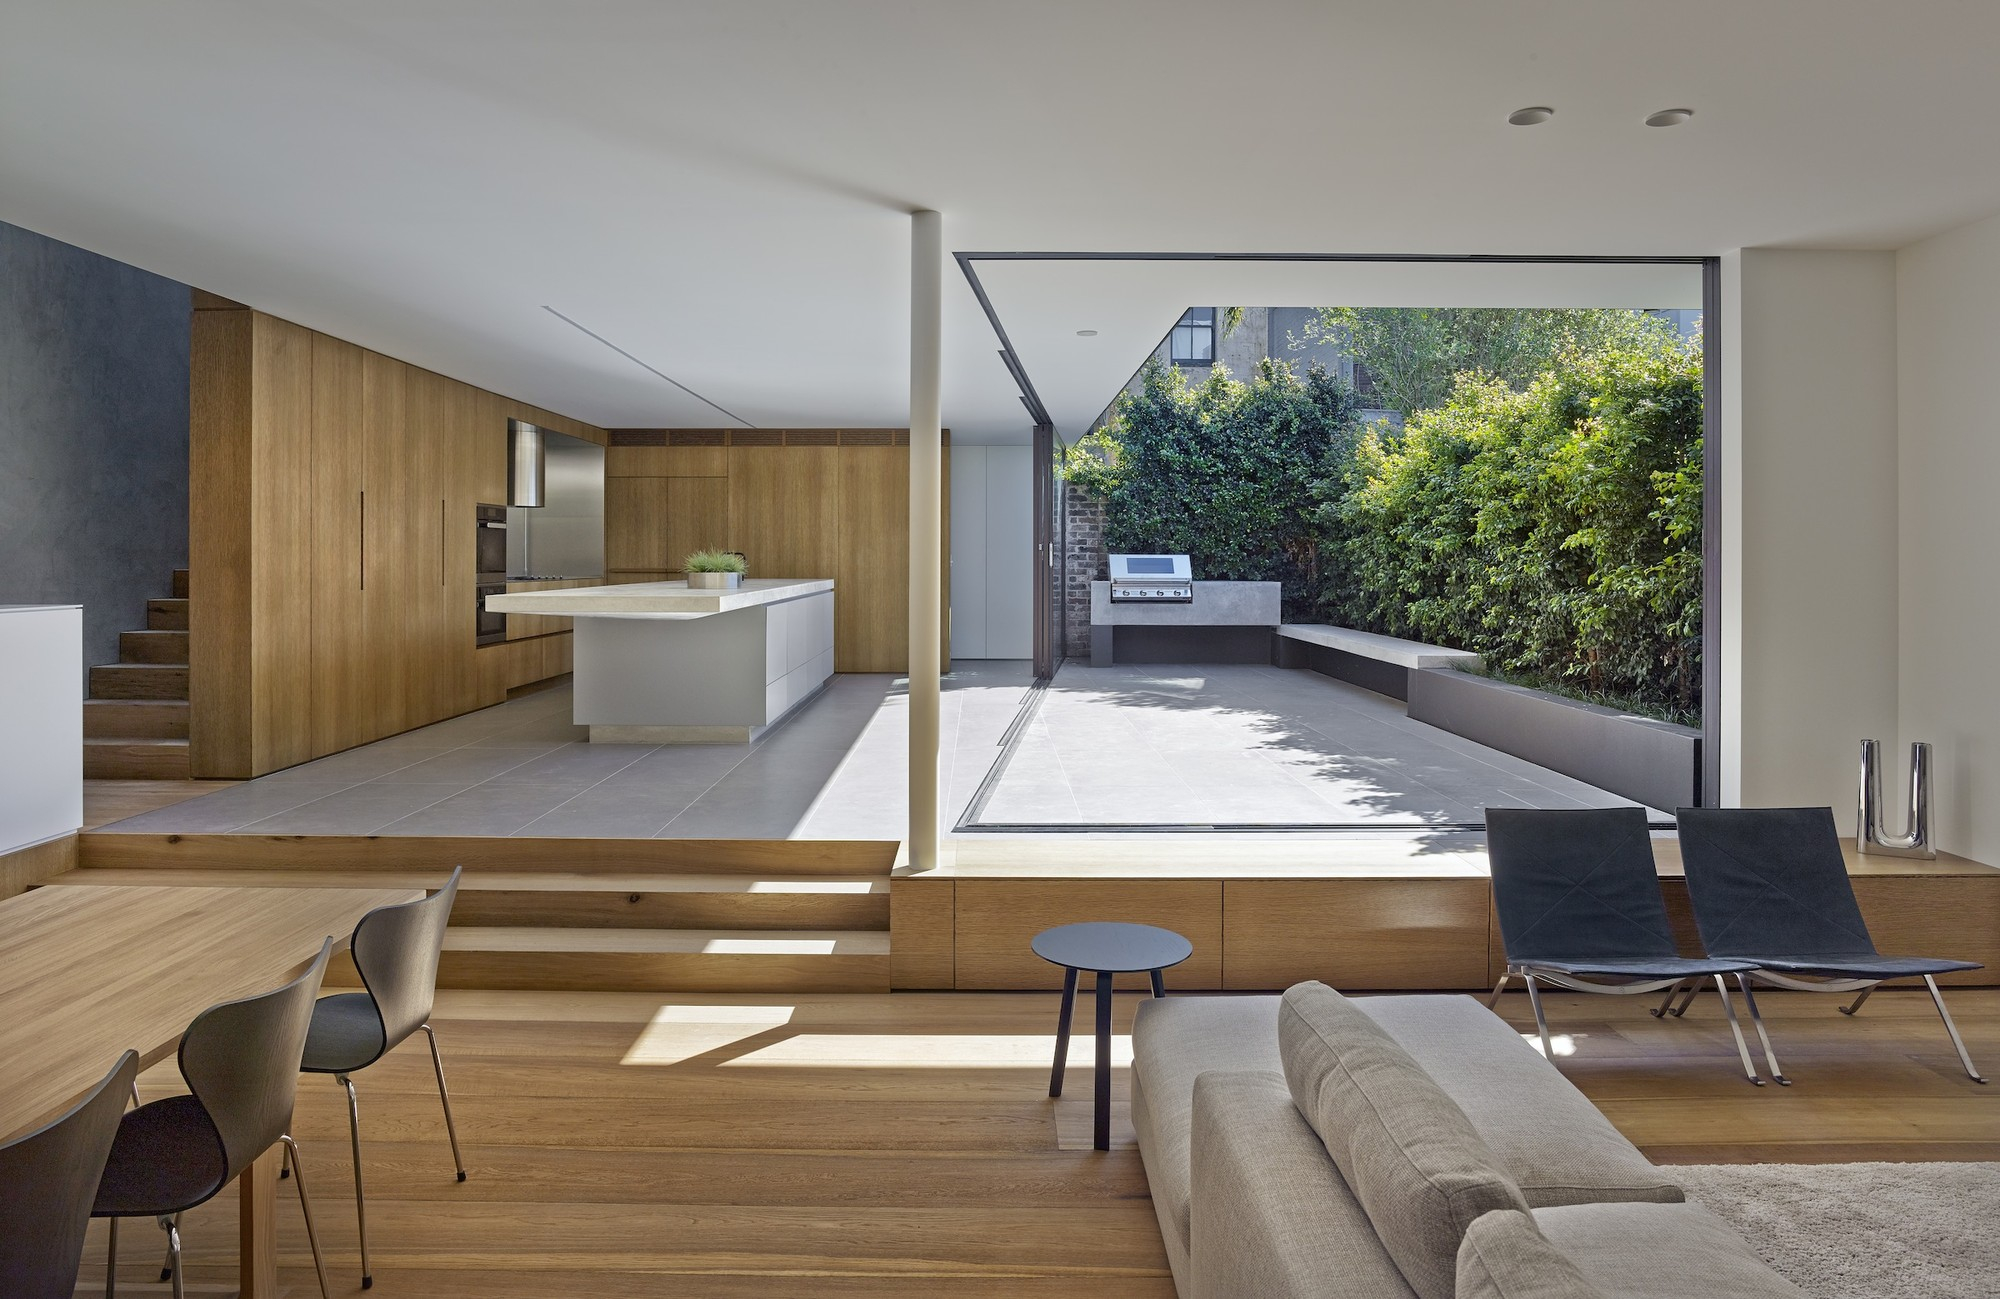 Birchgrove House / Nobbs Radford Architects, © Murray Fredericks